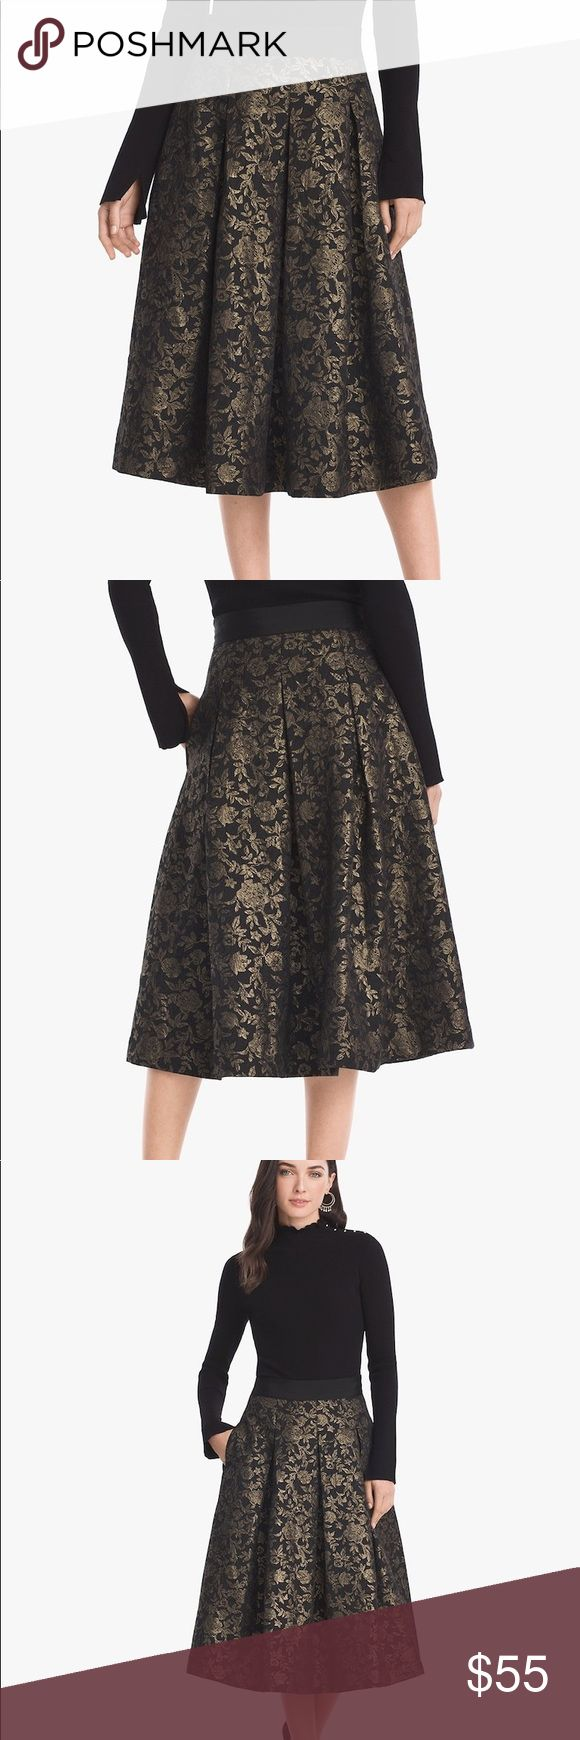 """White House Black Market Flare Skirt Brand new with tag, already sold out on website✌🏻 This party-ready skirt has a black waistband to keep things flattering, while the gold floral jacquard gives it an unexpected play on texture. The best part? We gave it side seam pockets.  Black with gold floral jacquard midi fit-and-flare skirt Sits at waist; hits middle of calf Black waistband; side seam pockets Hidden side zip with hook-and-eye closure Fully lined Approx. 32 1/2"""" center back length…"""